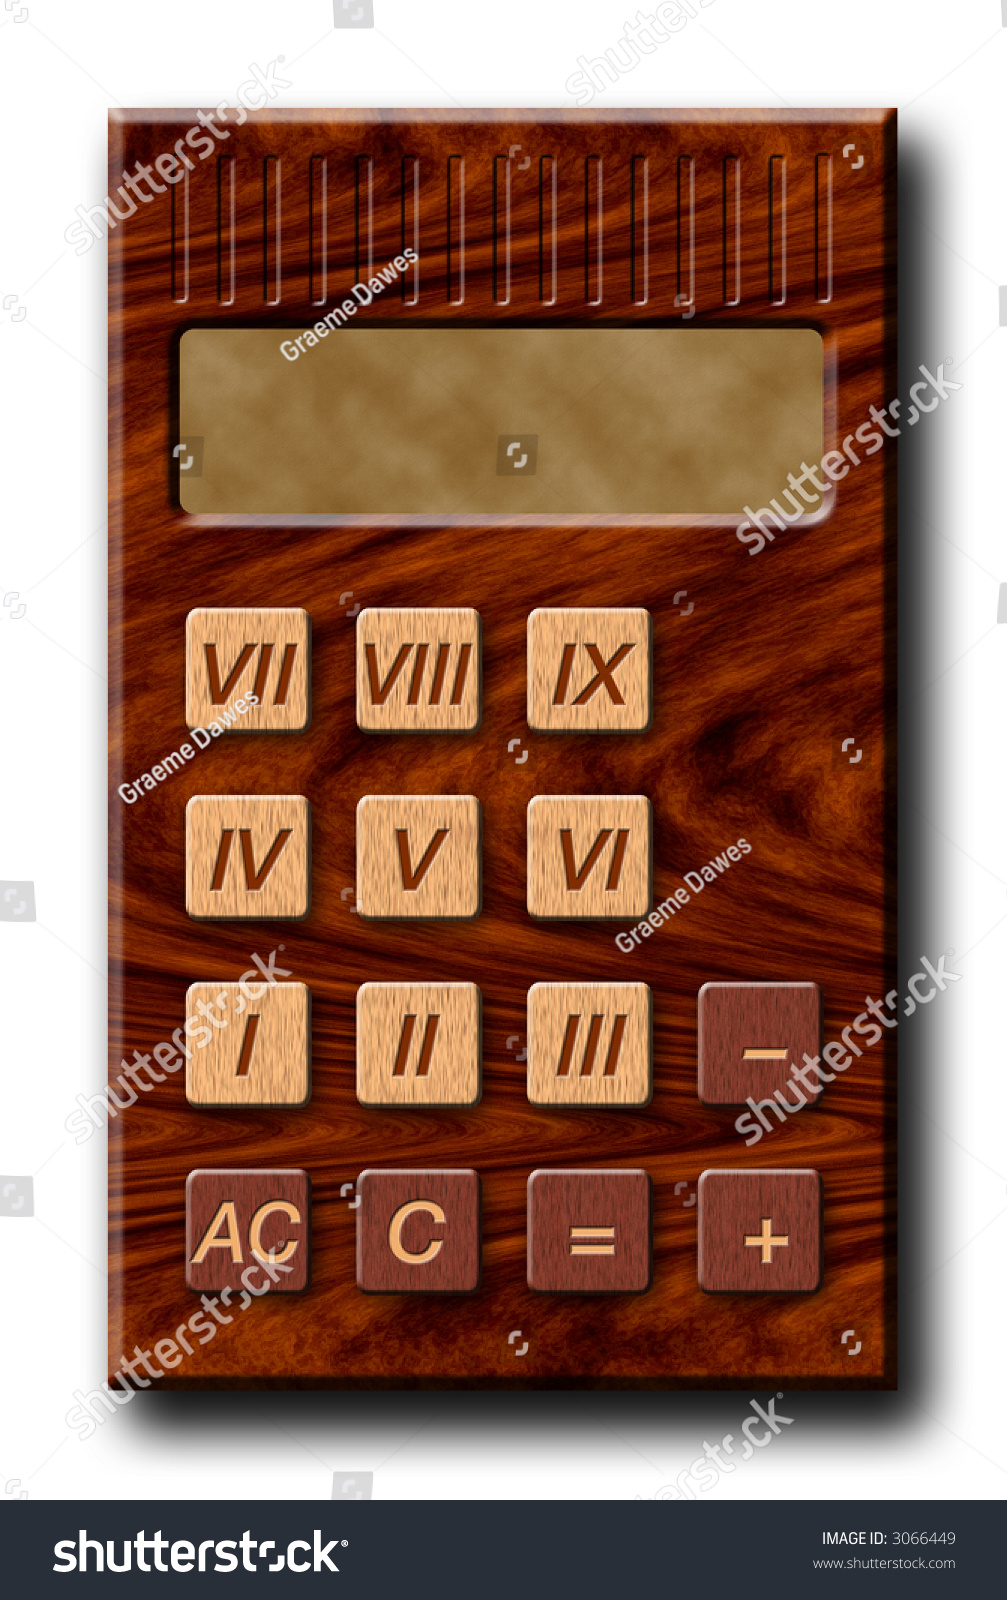 Roman numerals calculator - Wooden Calculator With Roman Numerals Still Using Outdated Accounting Methods